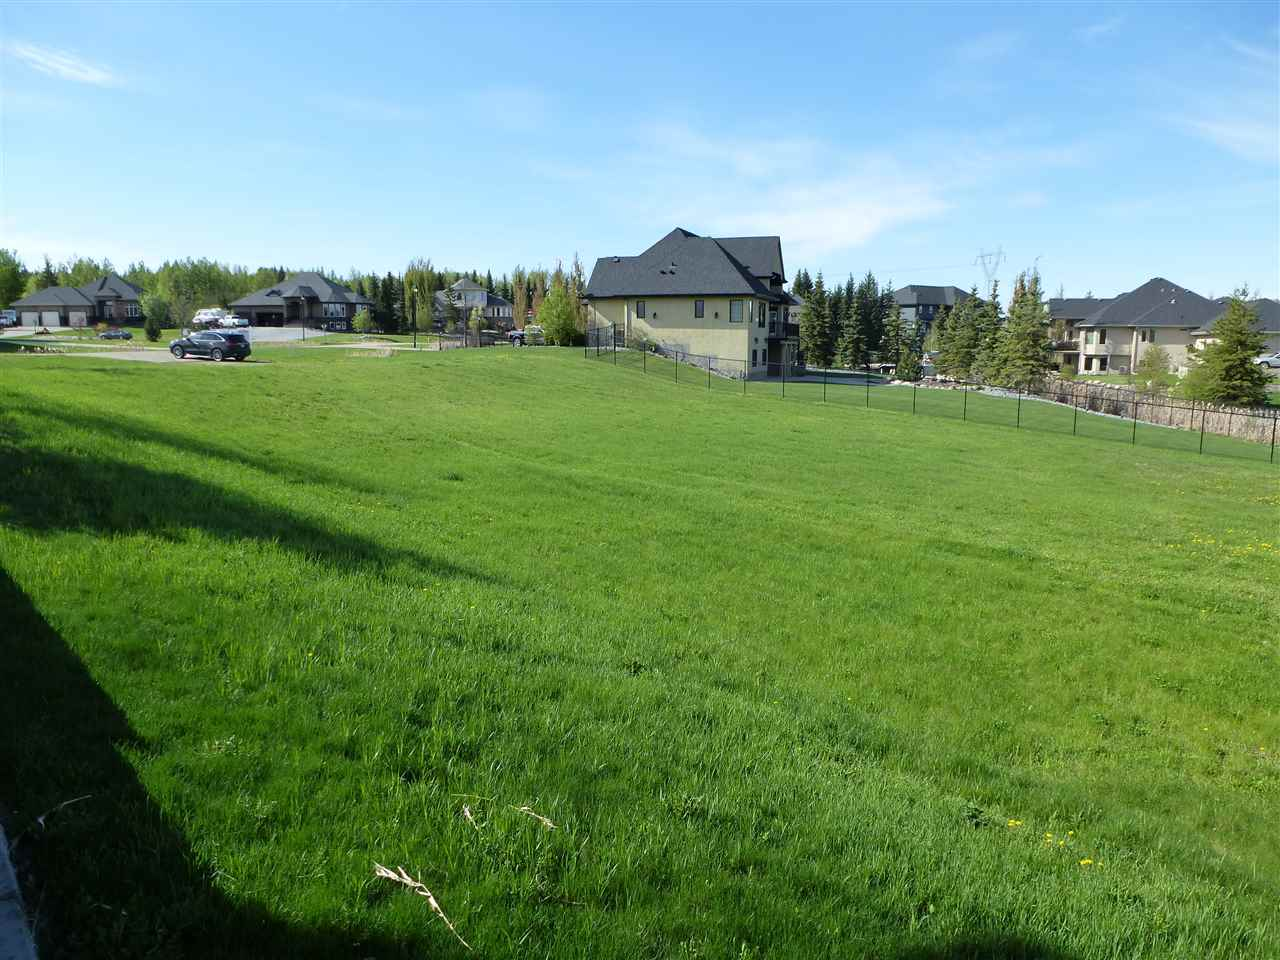 Photo 9: 60 53217 RGE RD 263 Road: Rural Parkland County Rural Land/Vacant Lot for sale : MLS(r) # E4065068